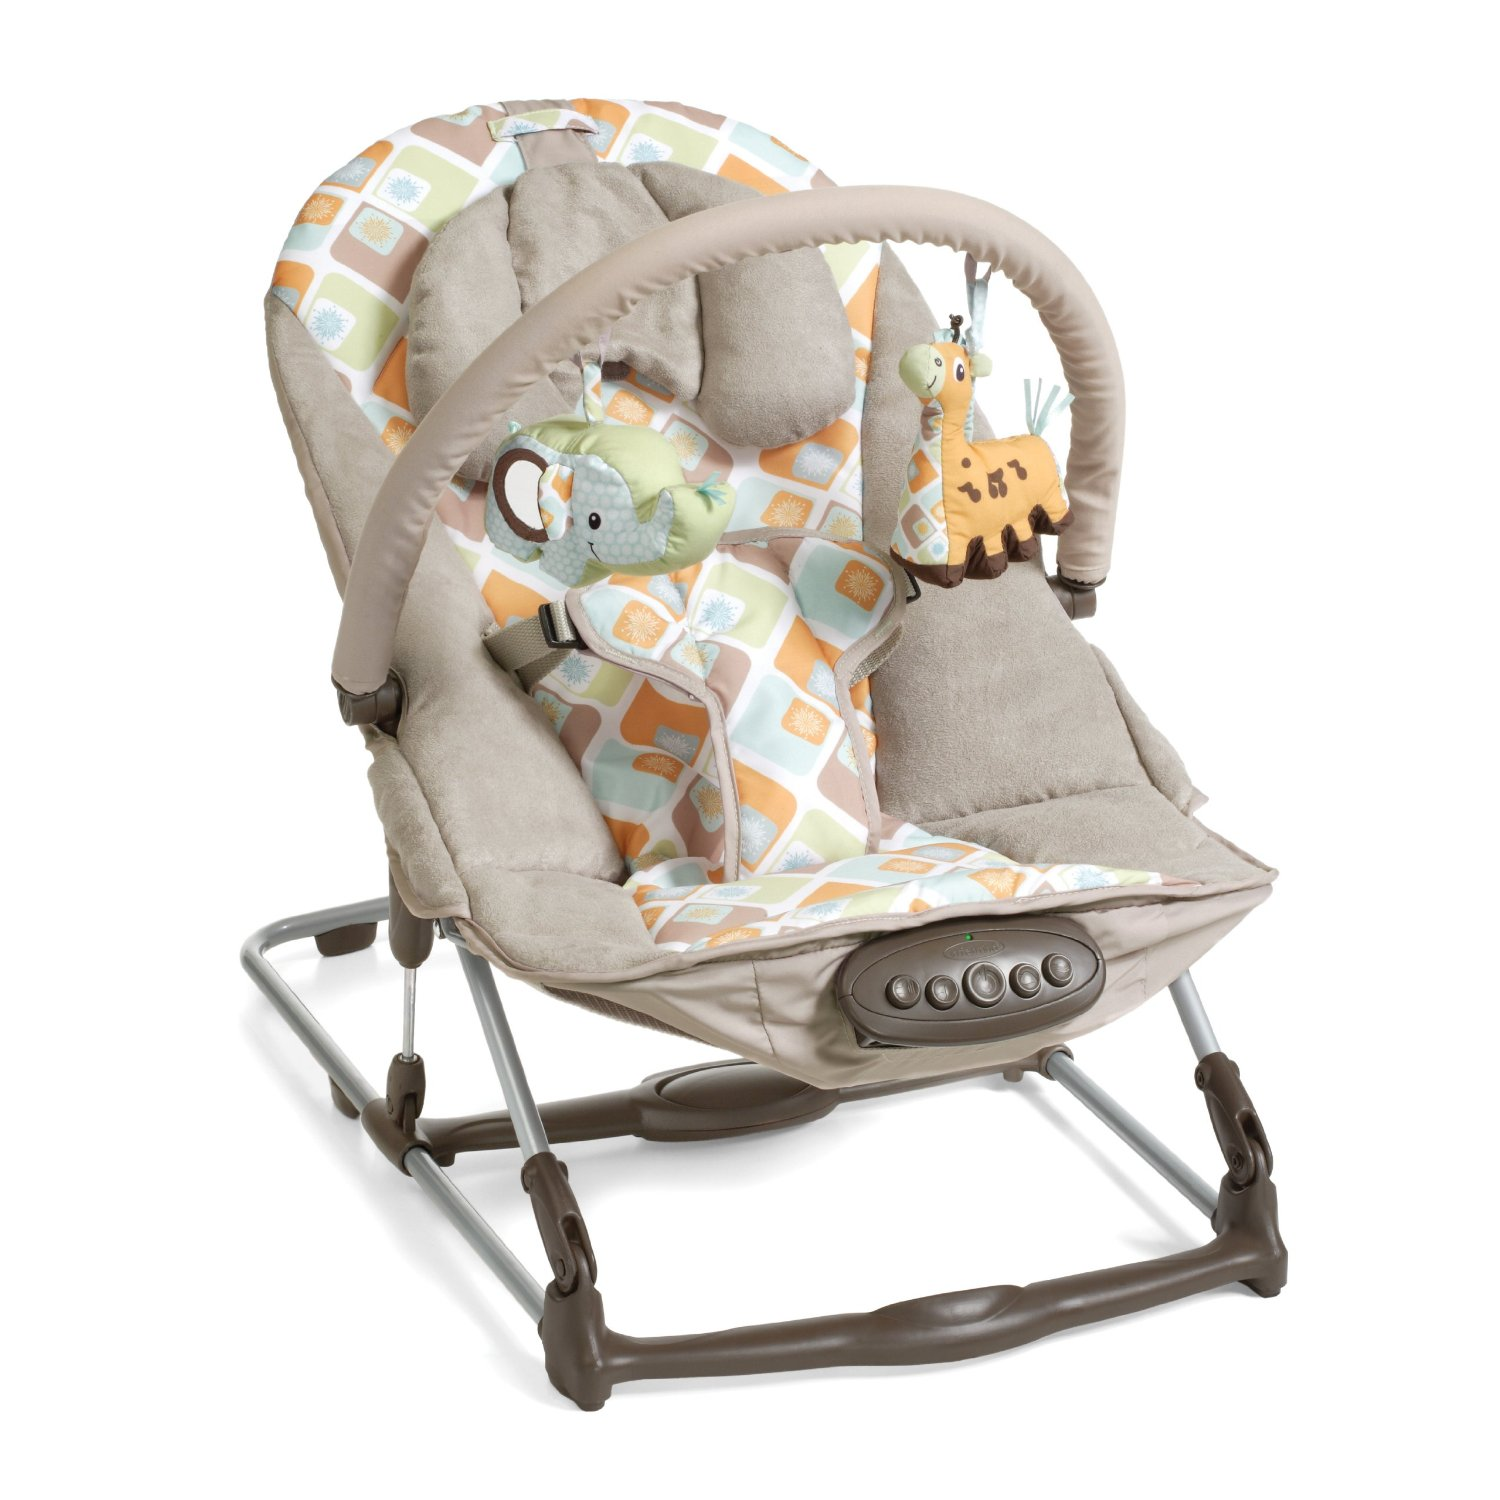 Baby Chair Next Stop Another Baby Top 10 List Baby Chair Swing